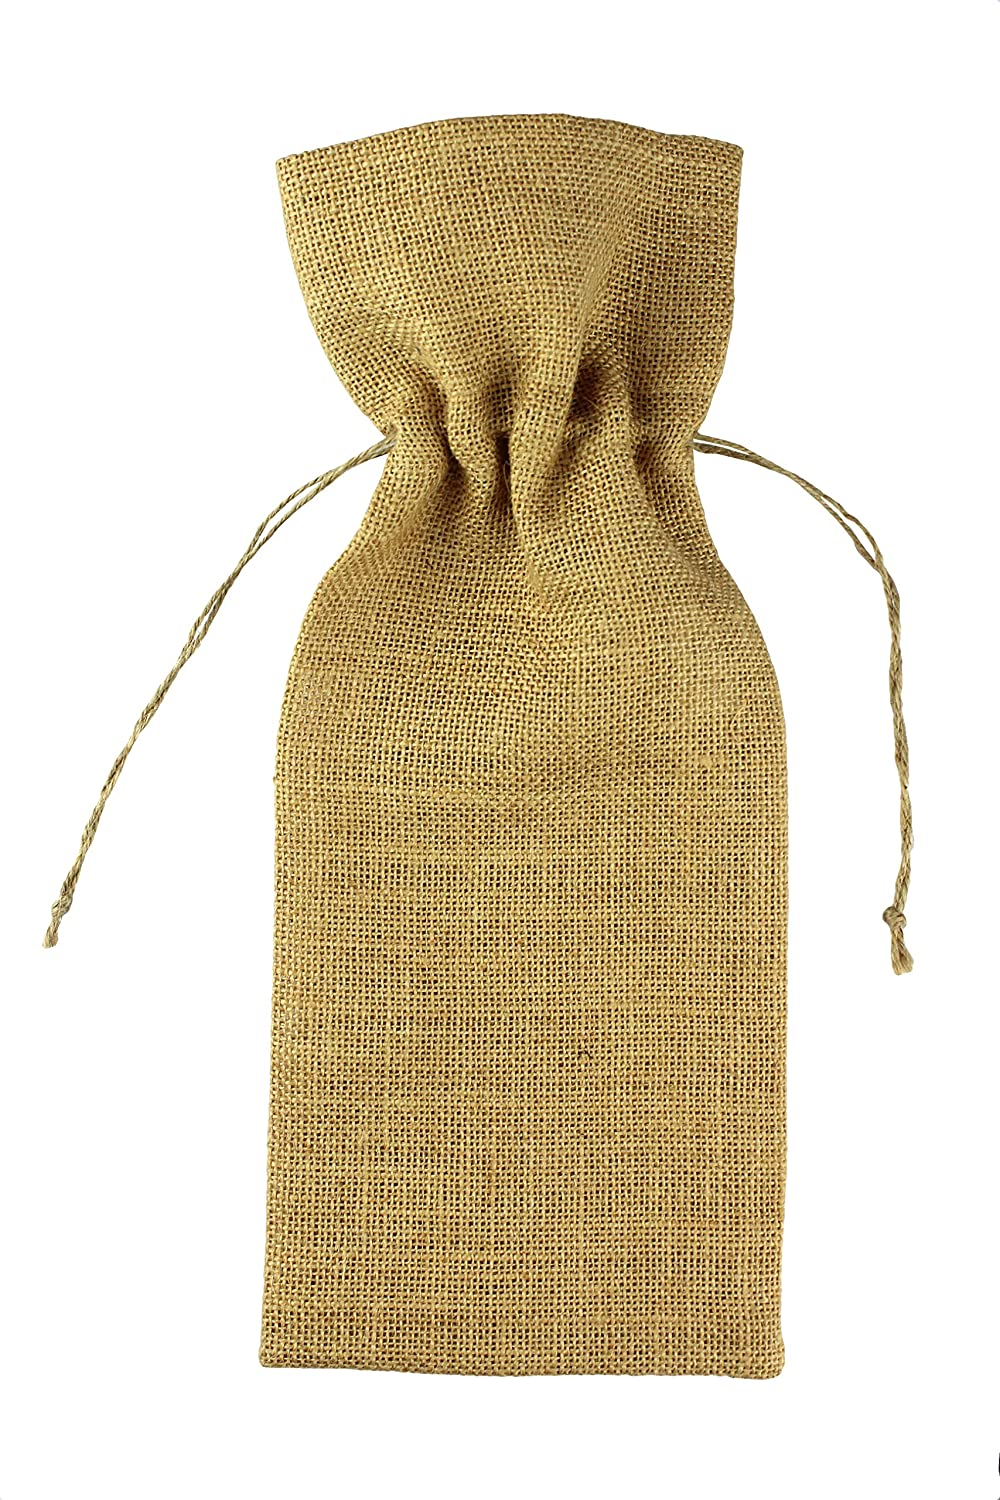 COTTON CRAFT 12 Pack Jute Burlap Wine Bag Set Wrap Your Wine in The Rustic and Natural Style of Natural Jute Burlap Natural